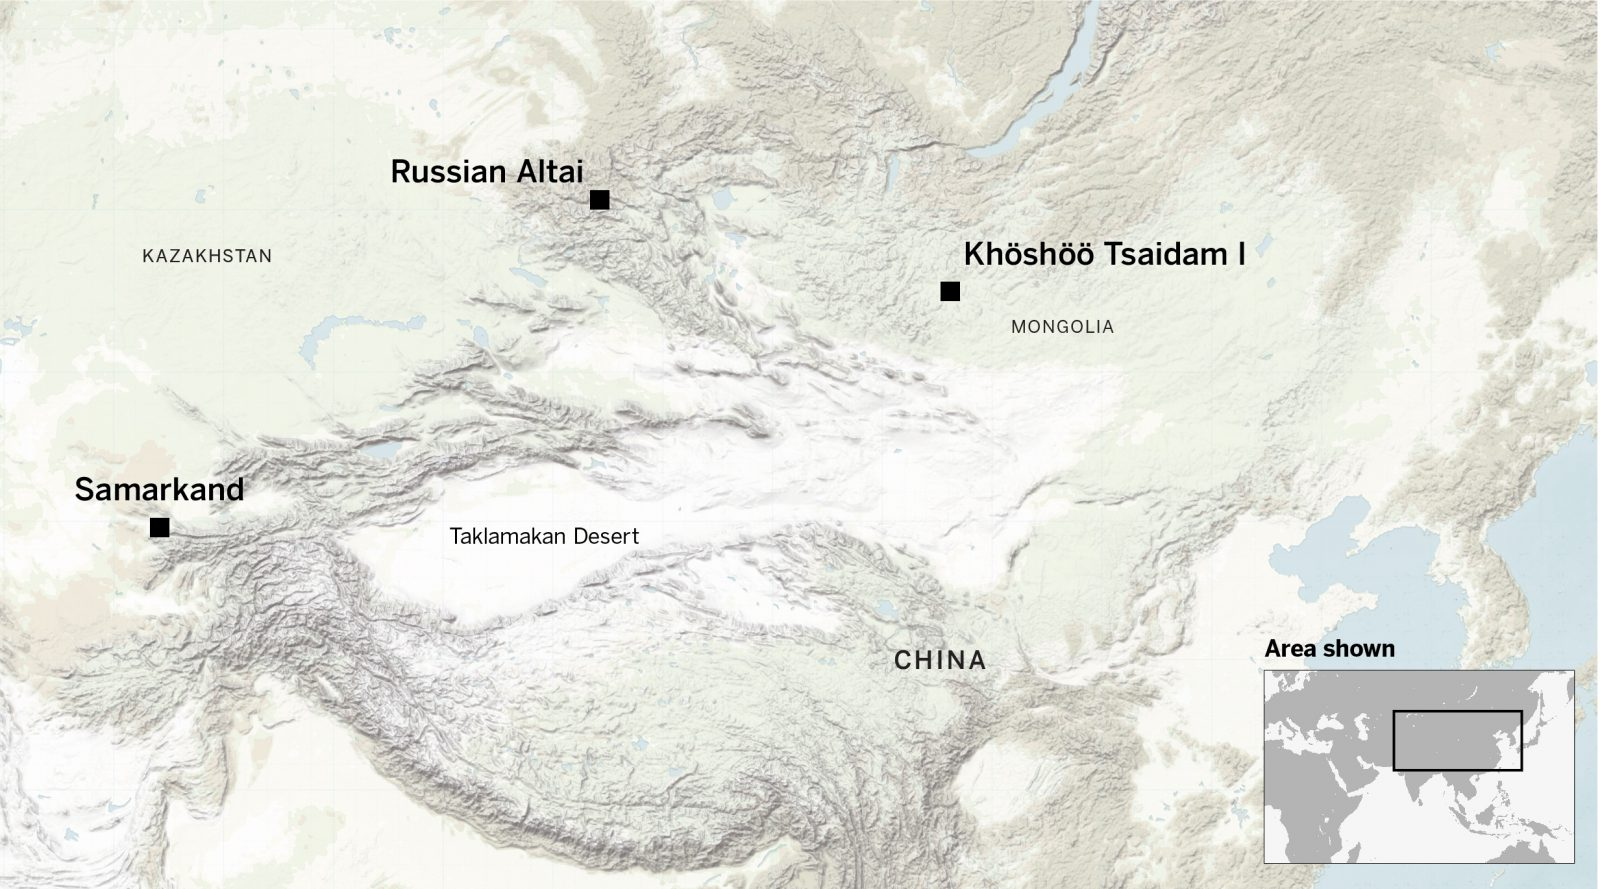 Sogdian traders reached as far north as northern mongolia and the Russian Altai